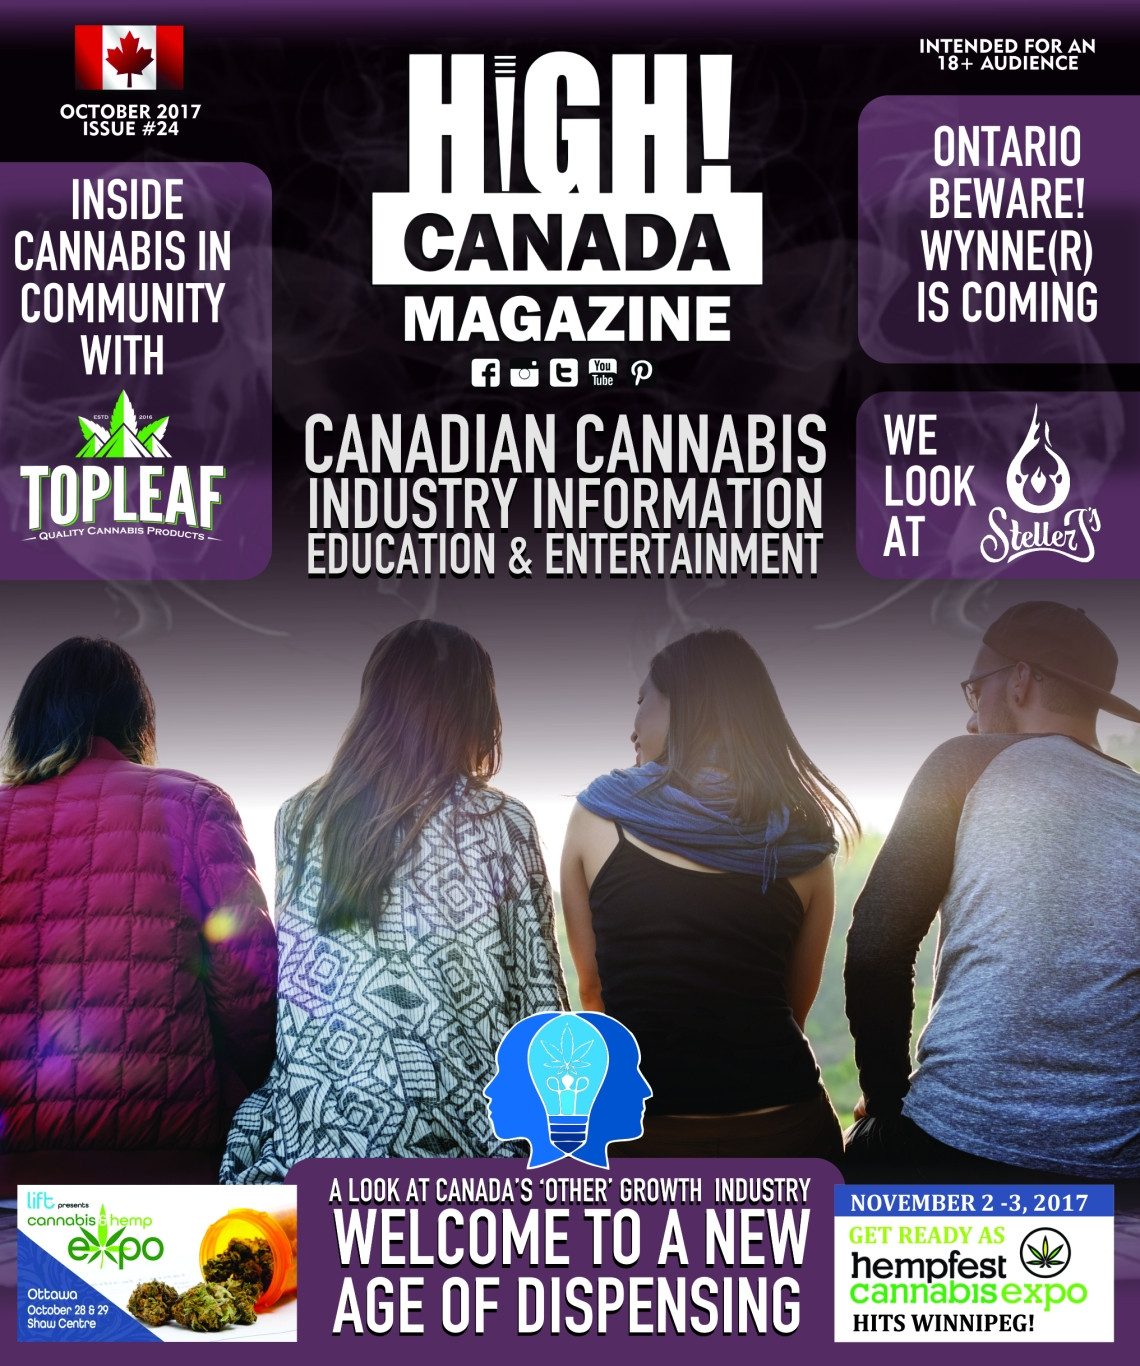 High Canada Magazine october 2017 cover.jpg